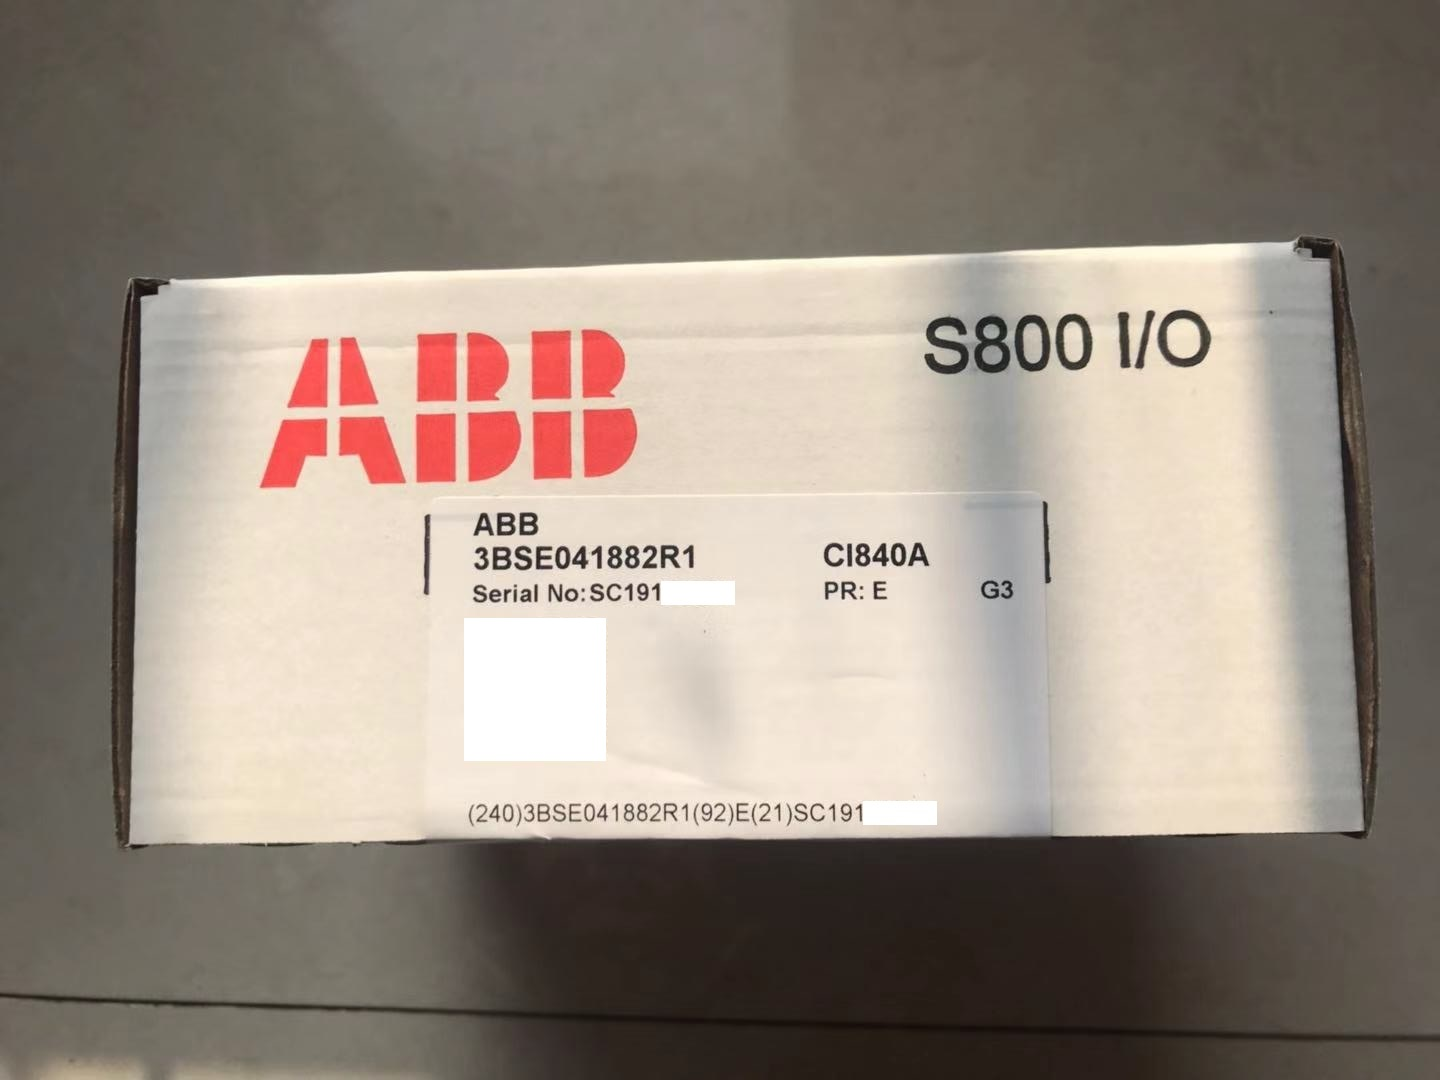 CI840A Profibus Interface 3BSE041882R1